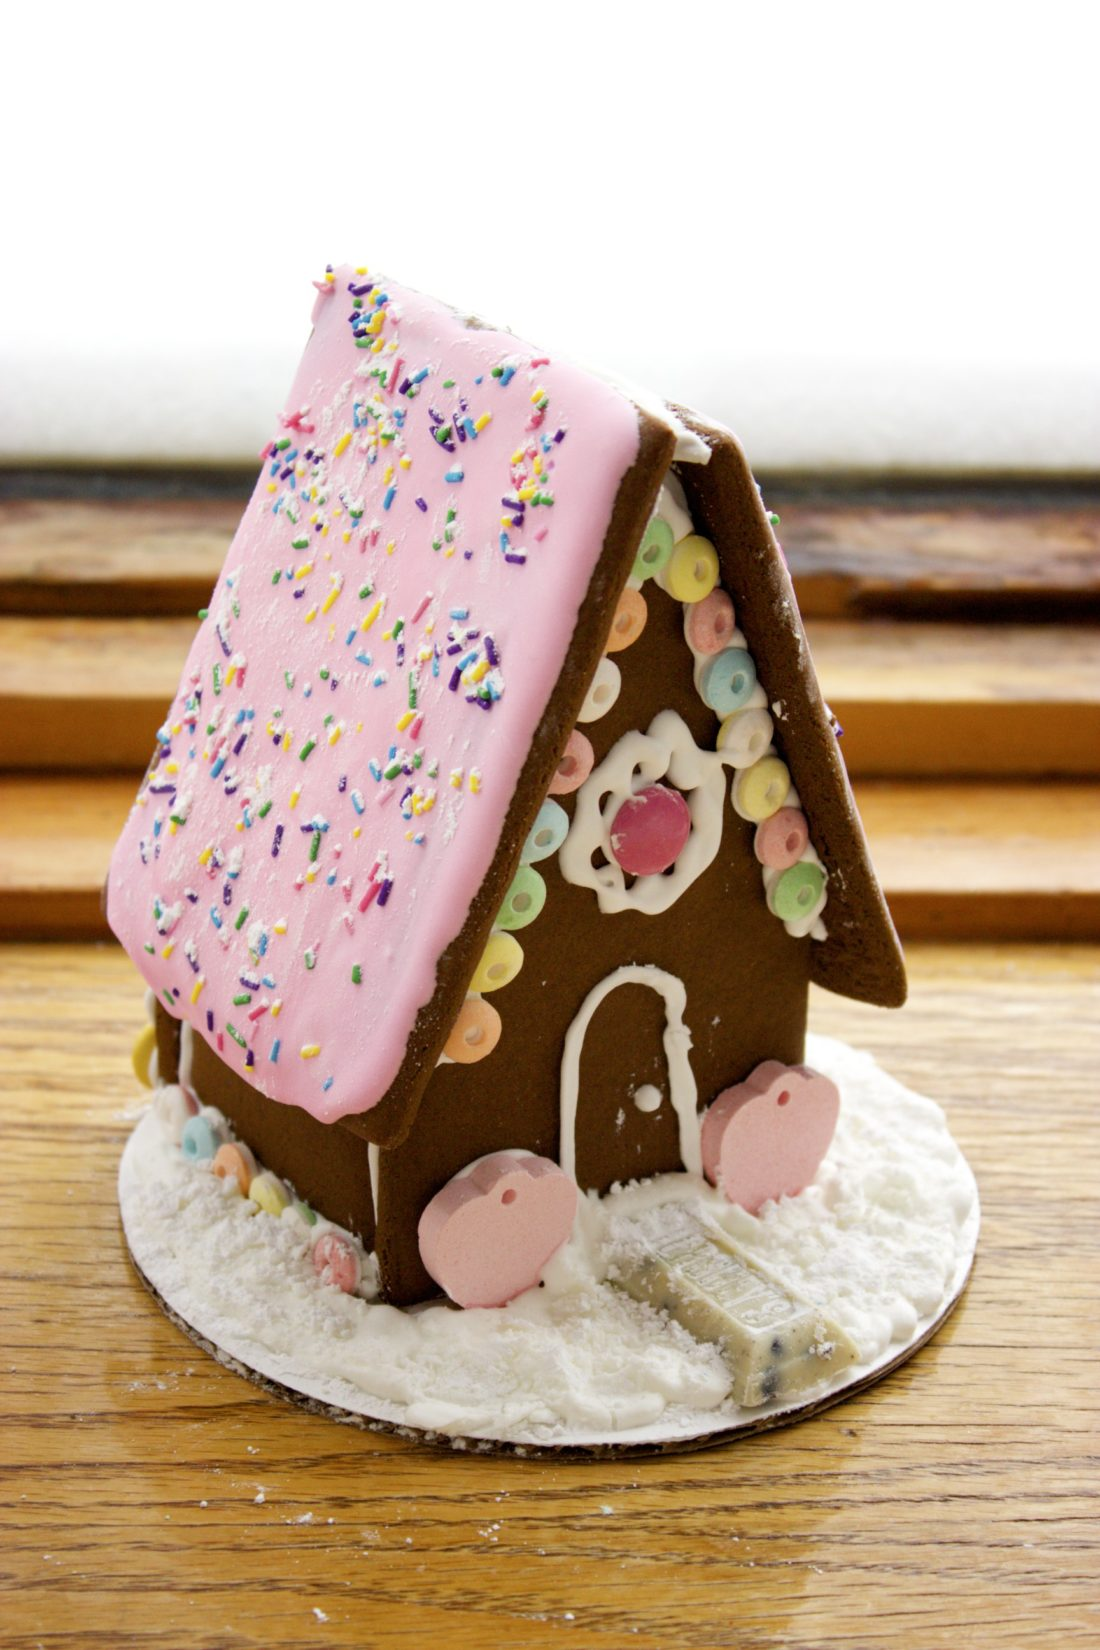 Let's Make Gingerbread Houses! The Results